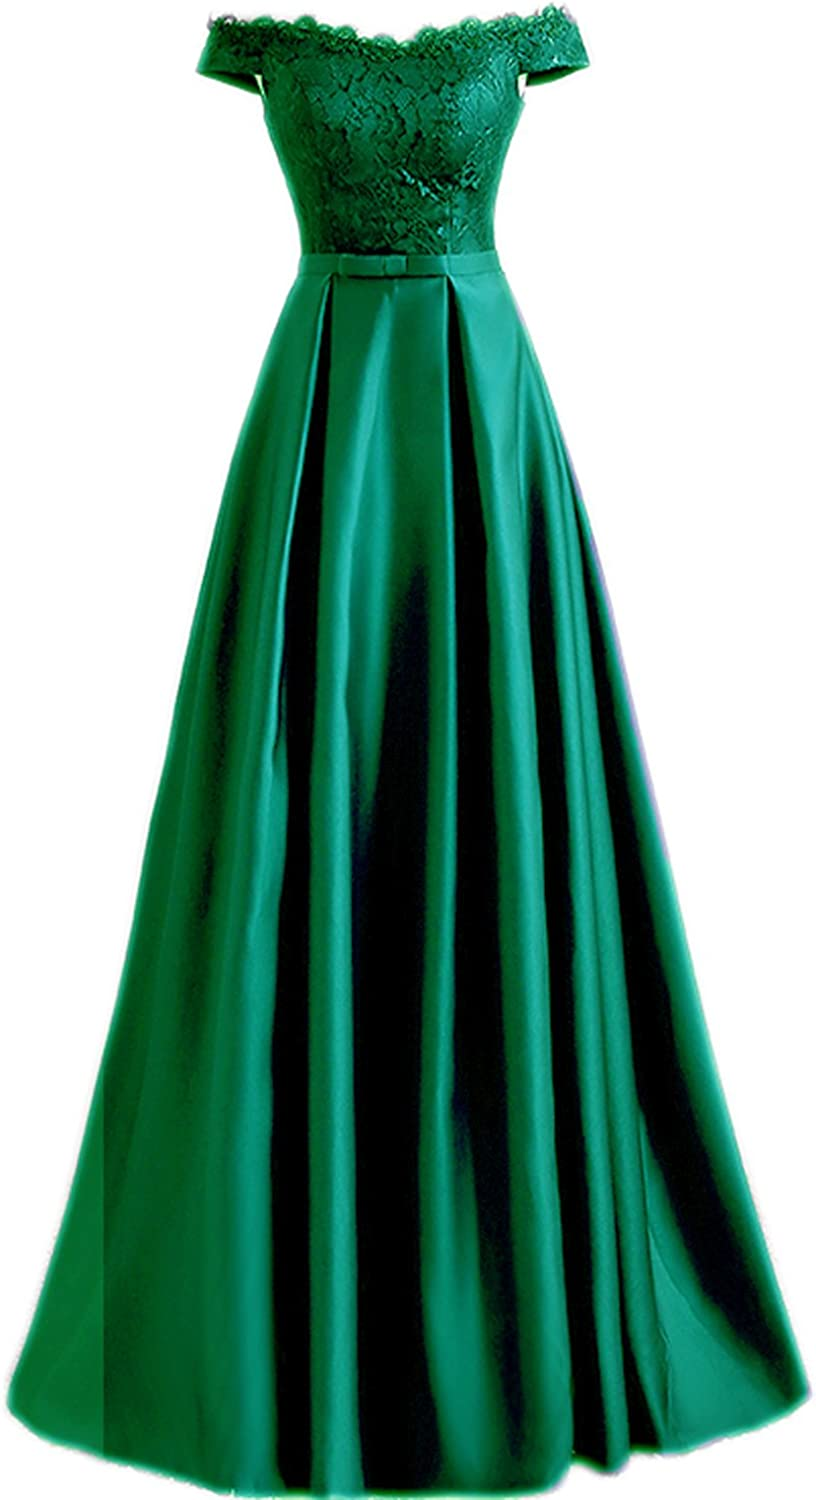 Sarahbridal Women's Satin Prom Dresses Long 2018 Off The Shoulder Lace Applique Evening Ball Gowns